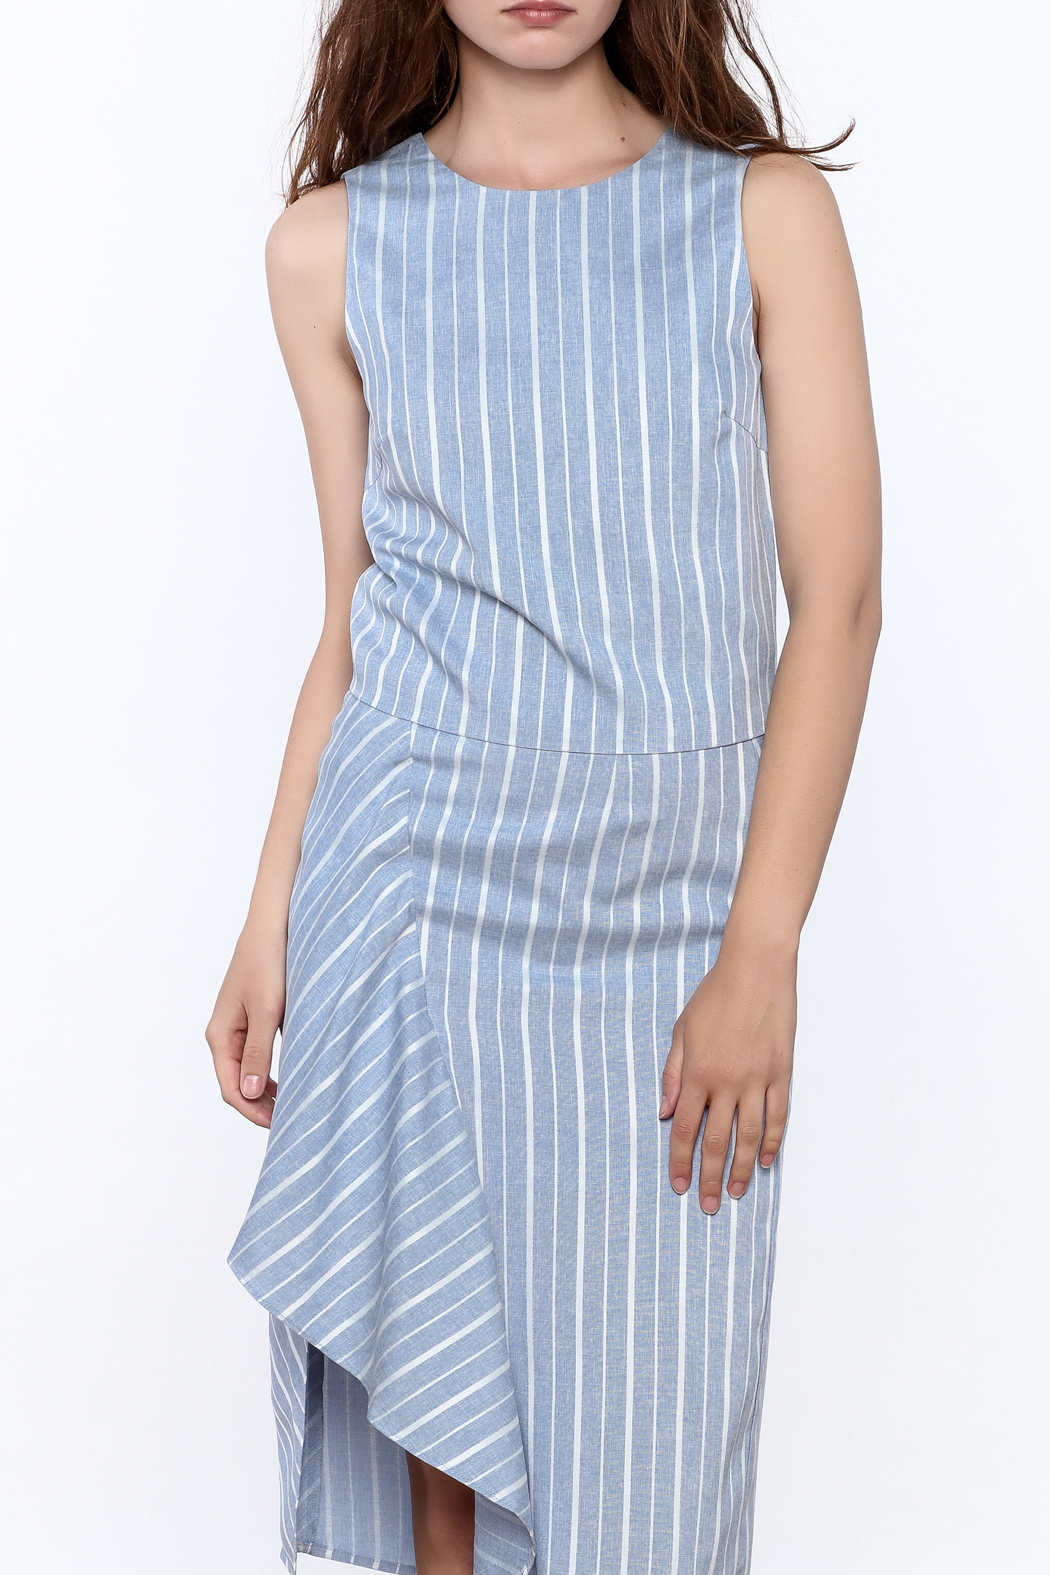 Jenn Blue Stripe Print Top - Front Cropped Image